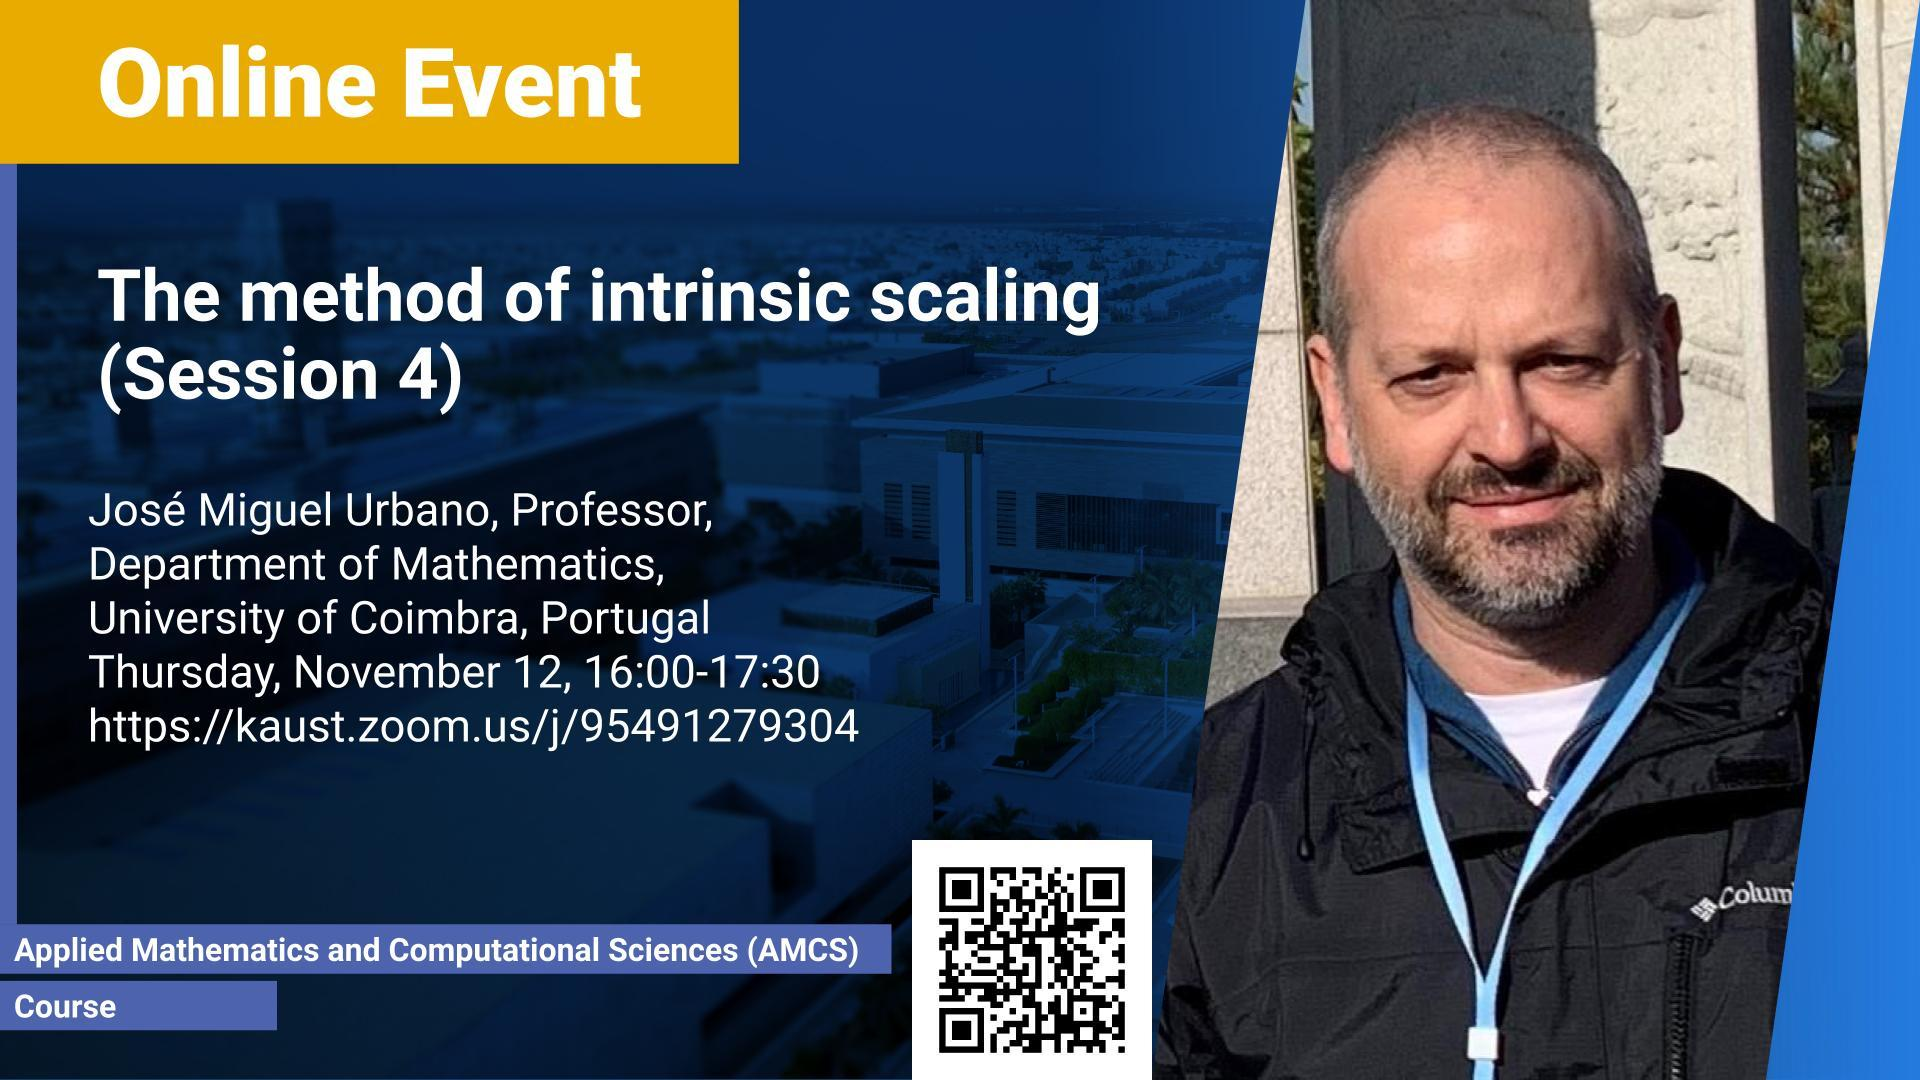 KAUST-CEMSE-AMCS-Jose Urbano-The-method-of-intrinsic-scaling-Session-4